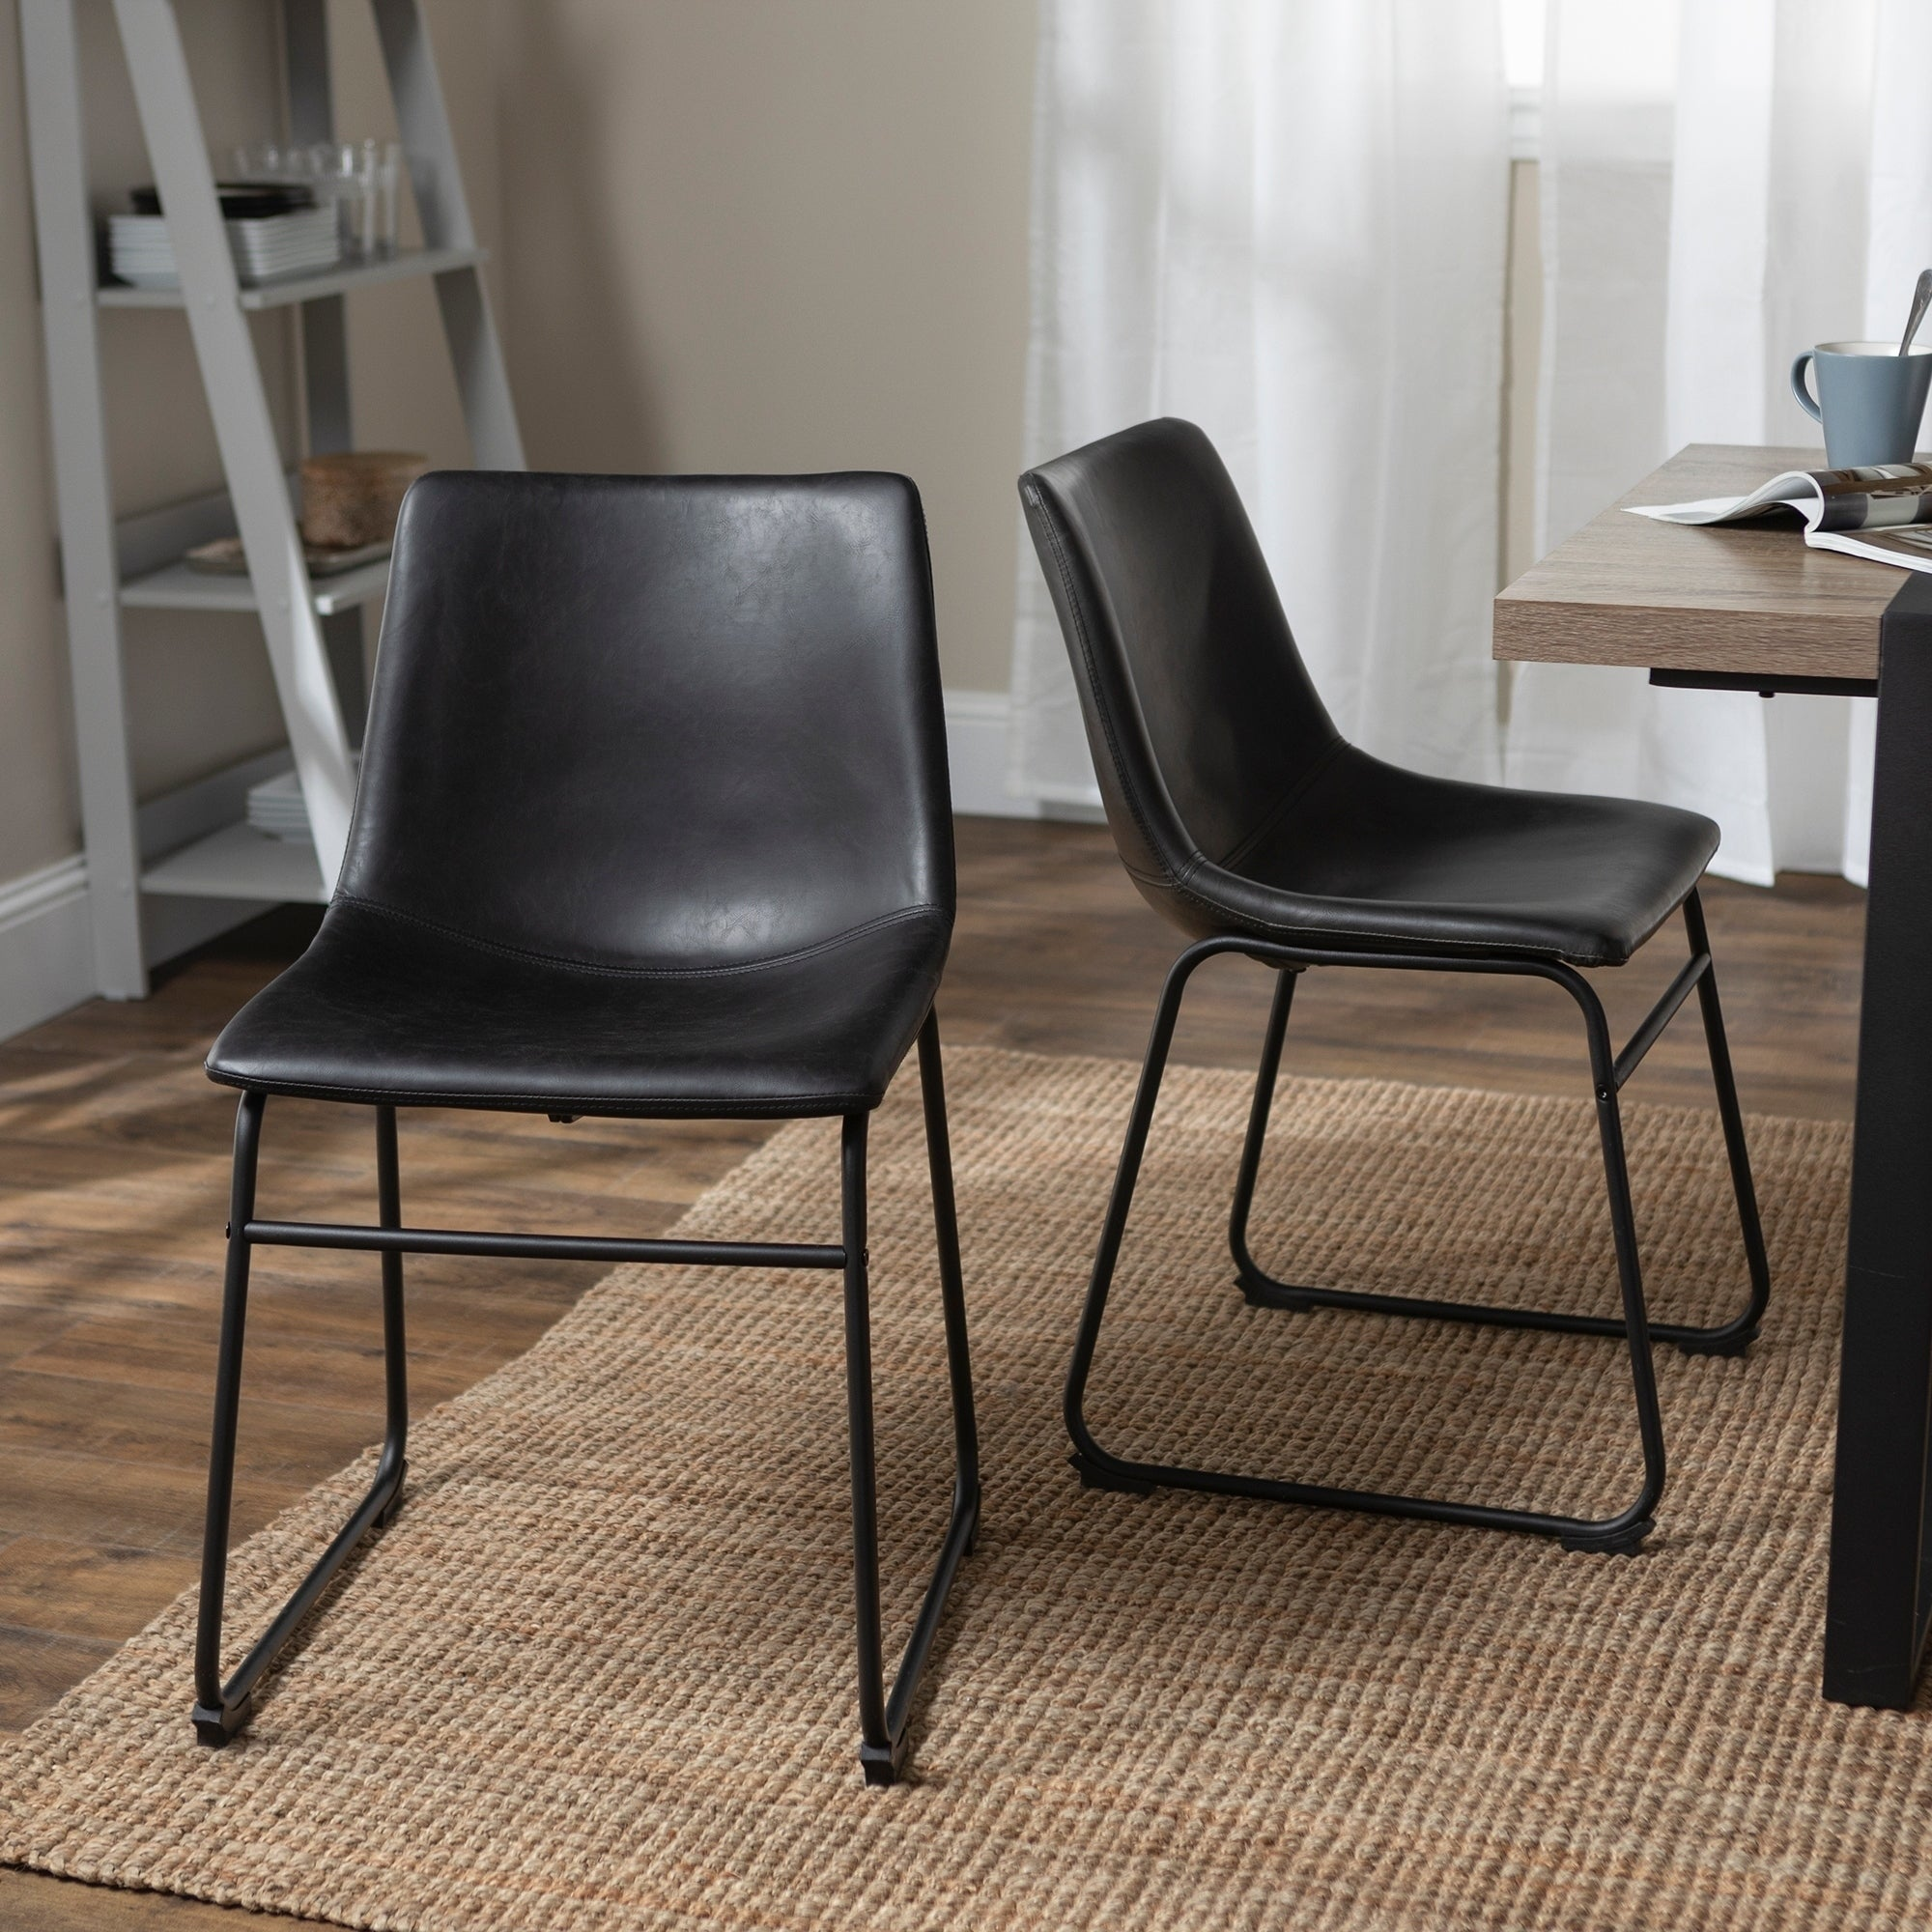 Outstanding Carbon Loft Prusiner Black Faux Leather Dining Chairs Set Of 2 Urban Metal Sled Legs N A Alphanode Cool Chair Designs And Ideas Alphanodeonline